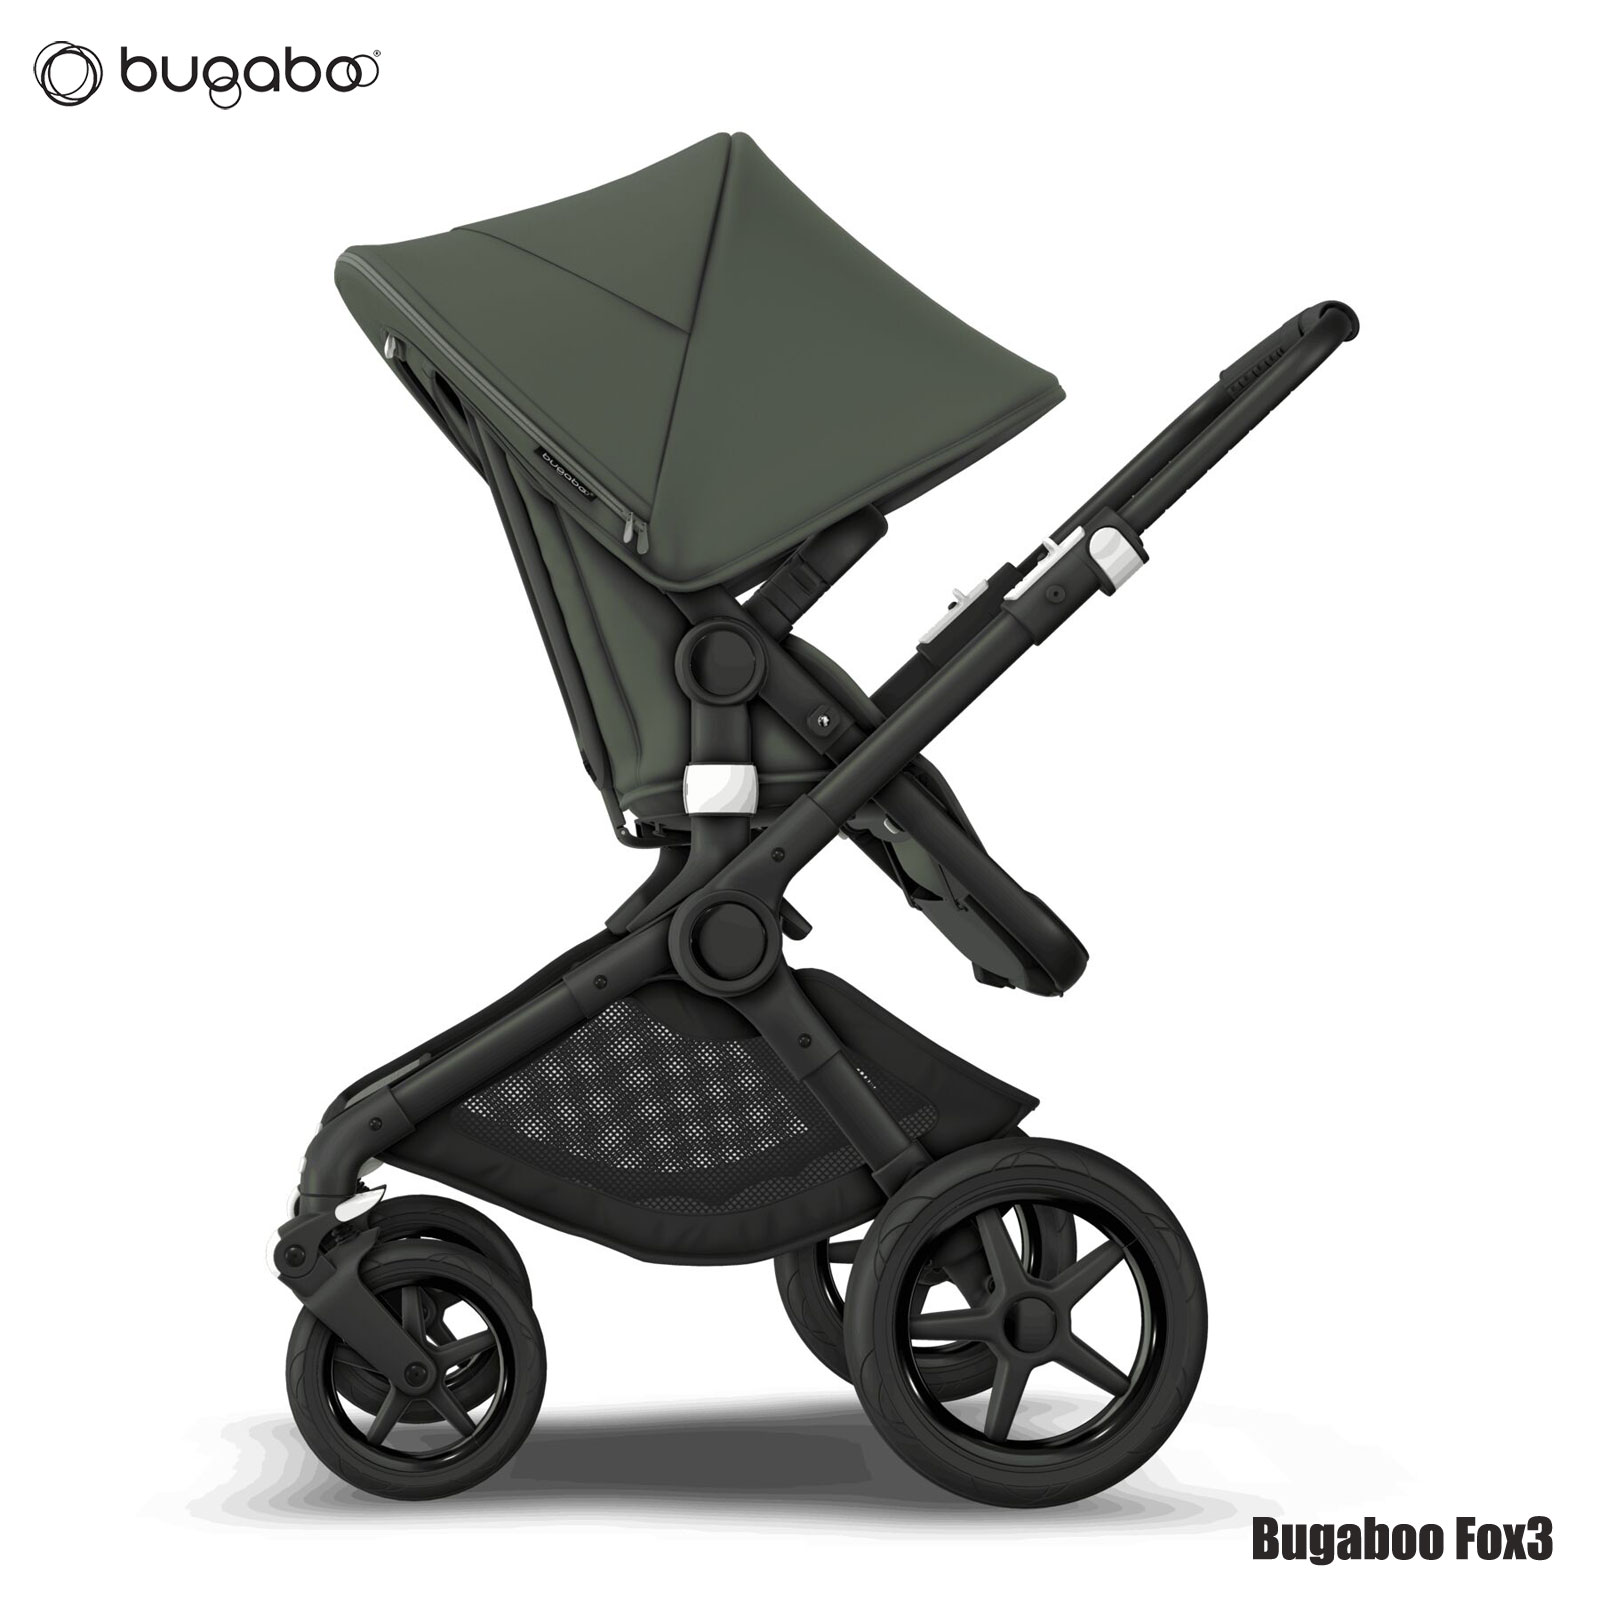 Bugaboo_Fox3_Black_Forest_green_Forest_green_seat_VCR.jpg